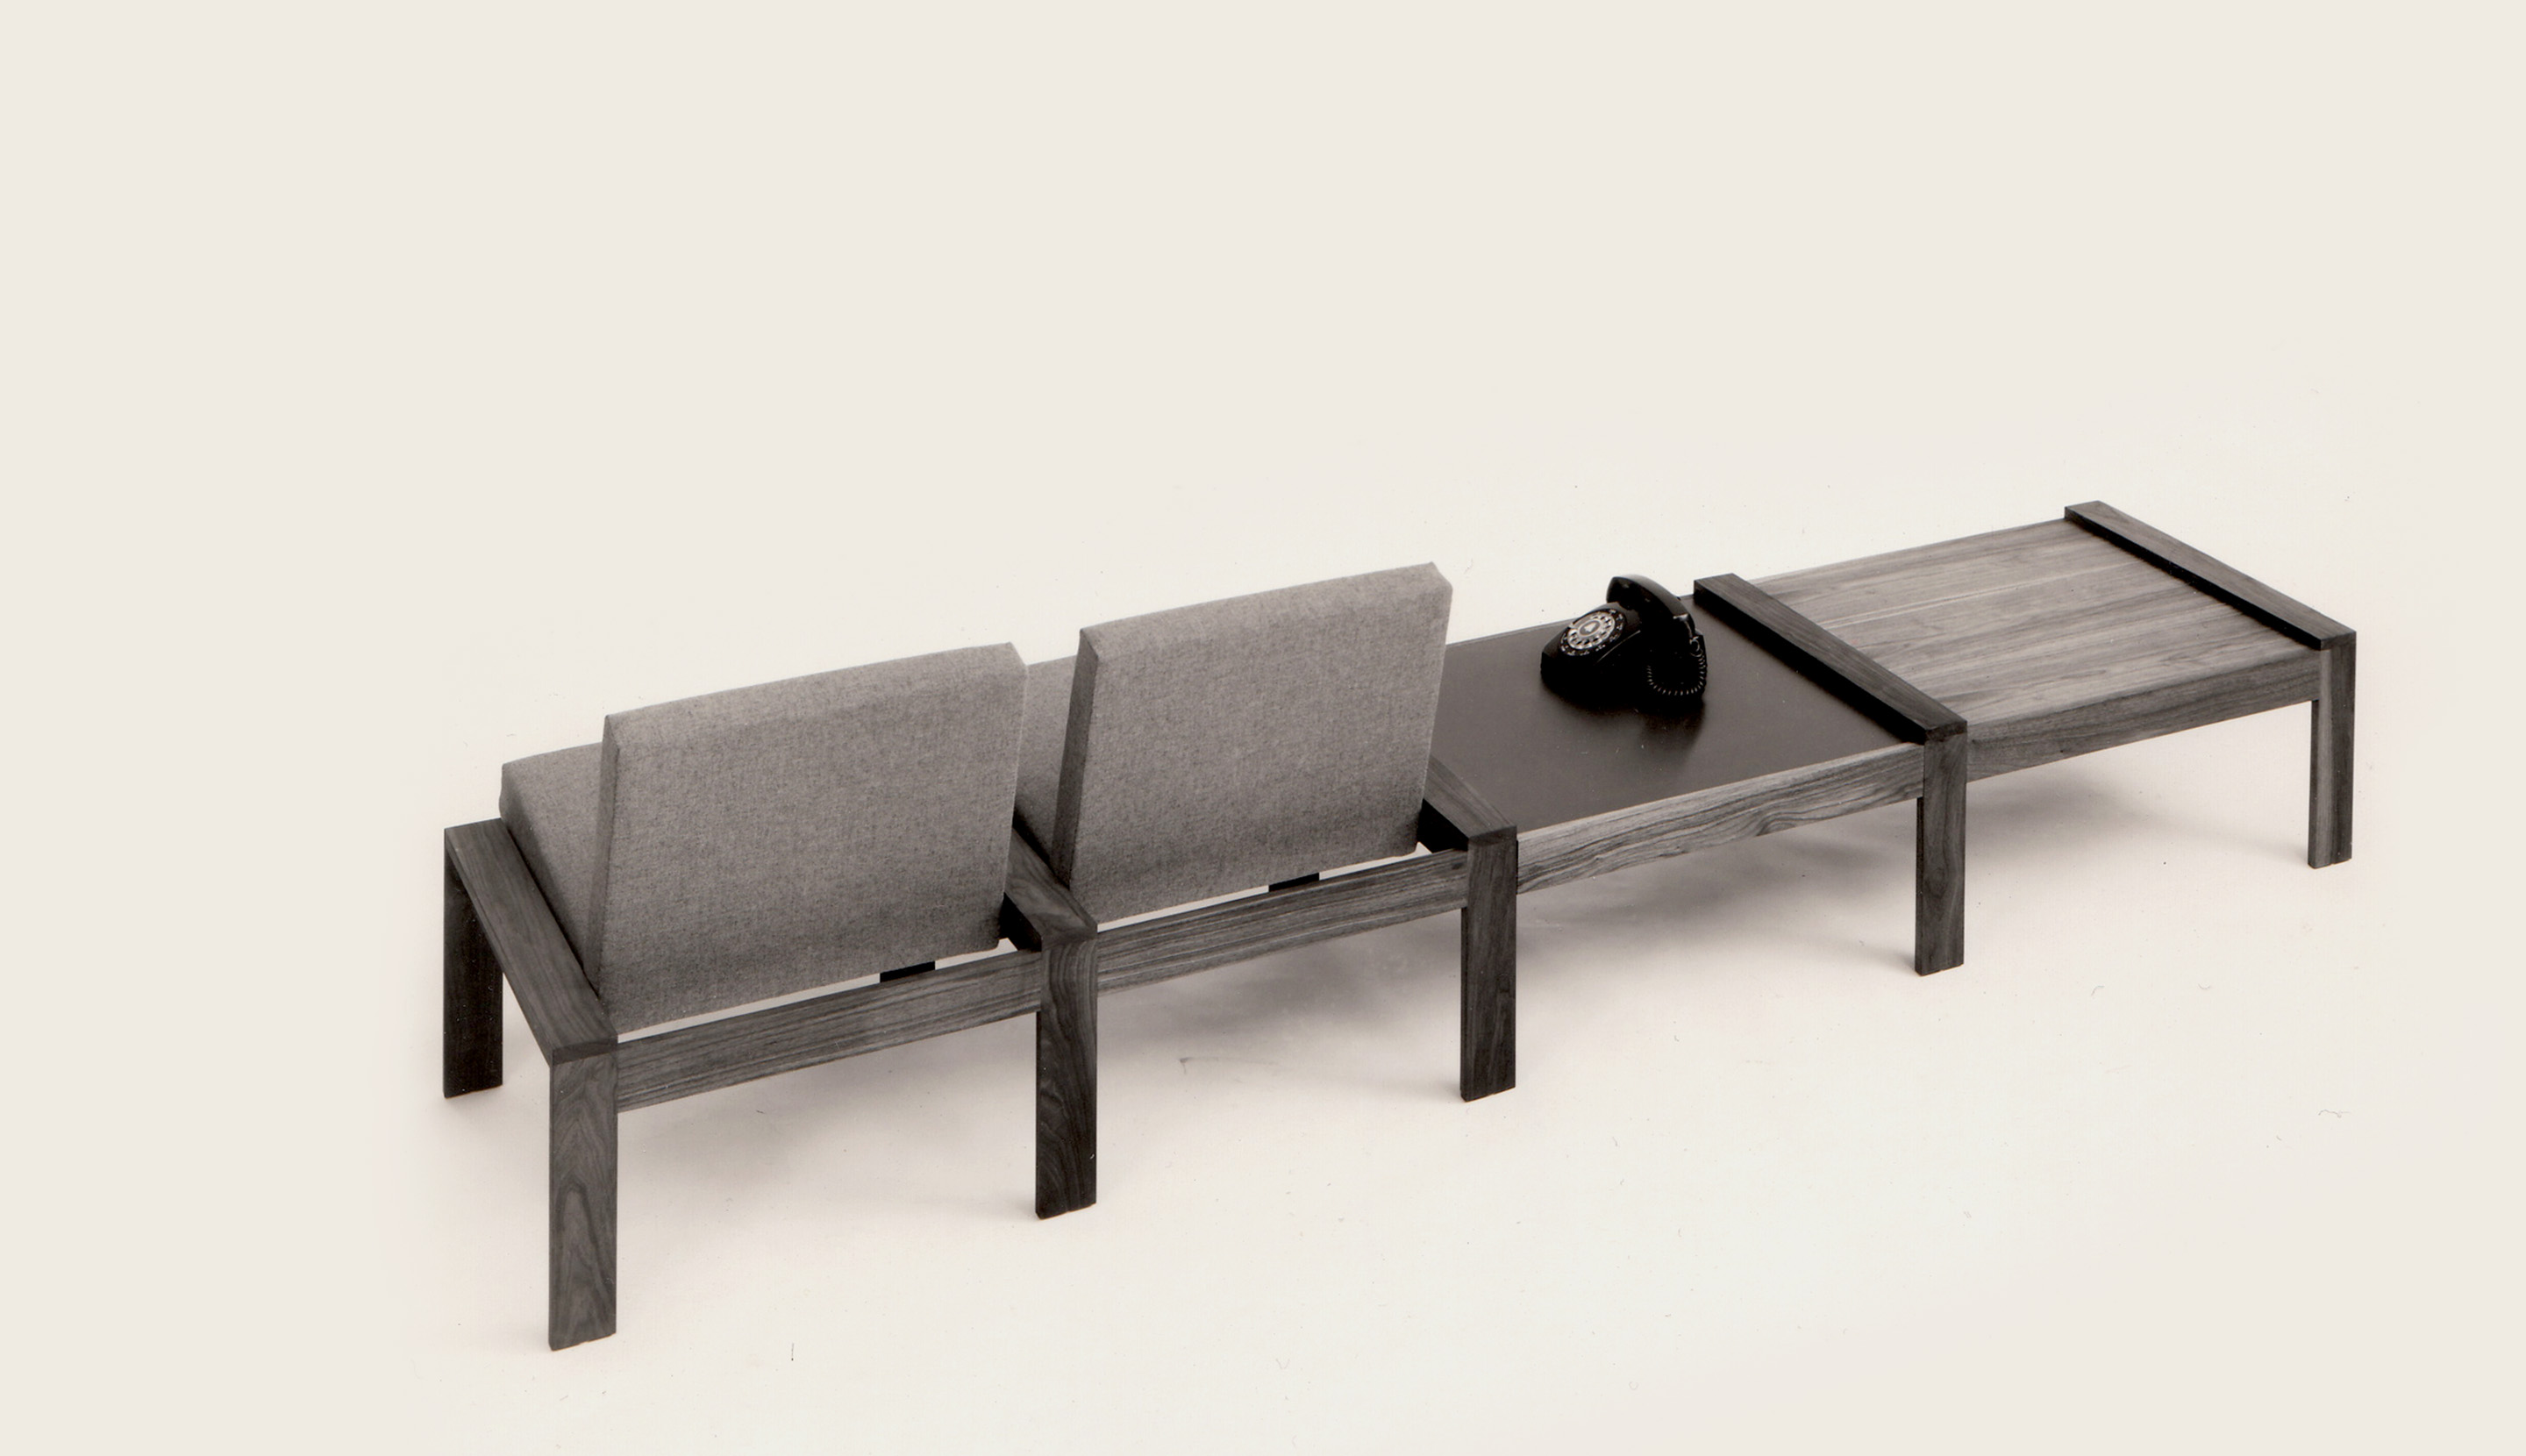 Modular seating and tables